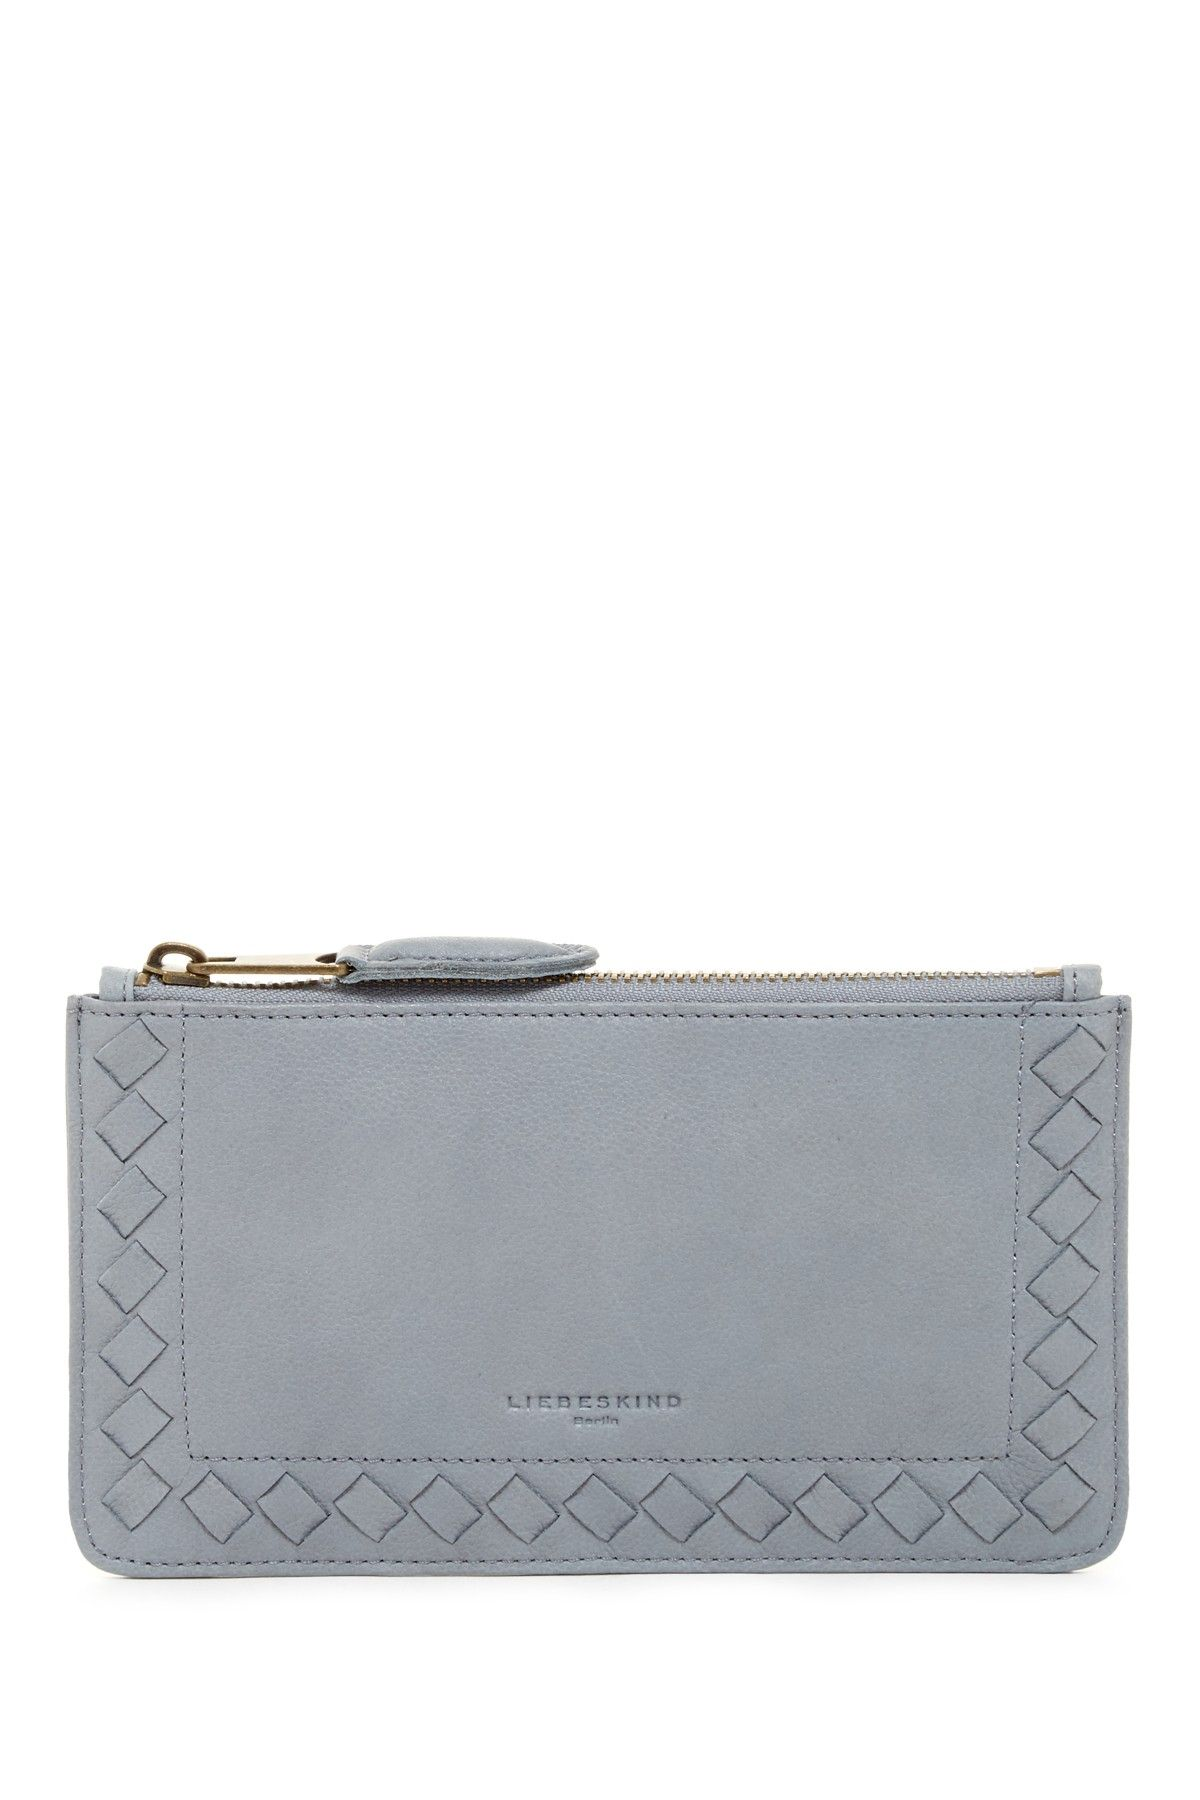 4860c92a5 Rabia Leather Vintage Zip Pouch | Products | Pinterest | Pouch ...